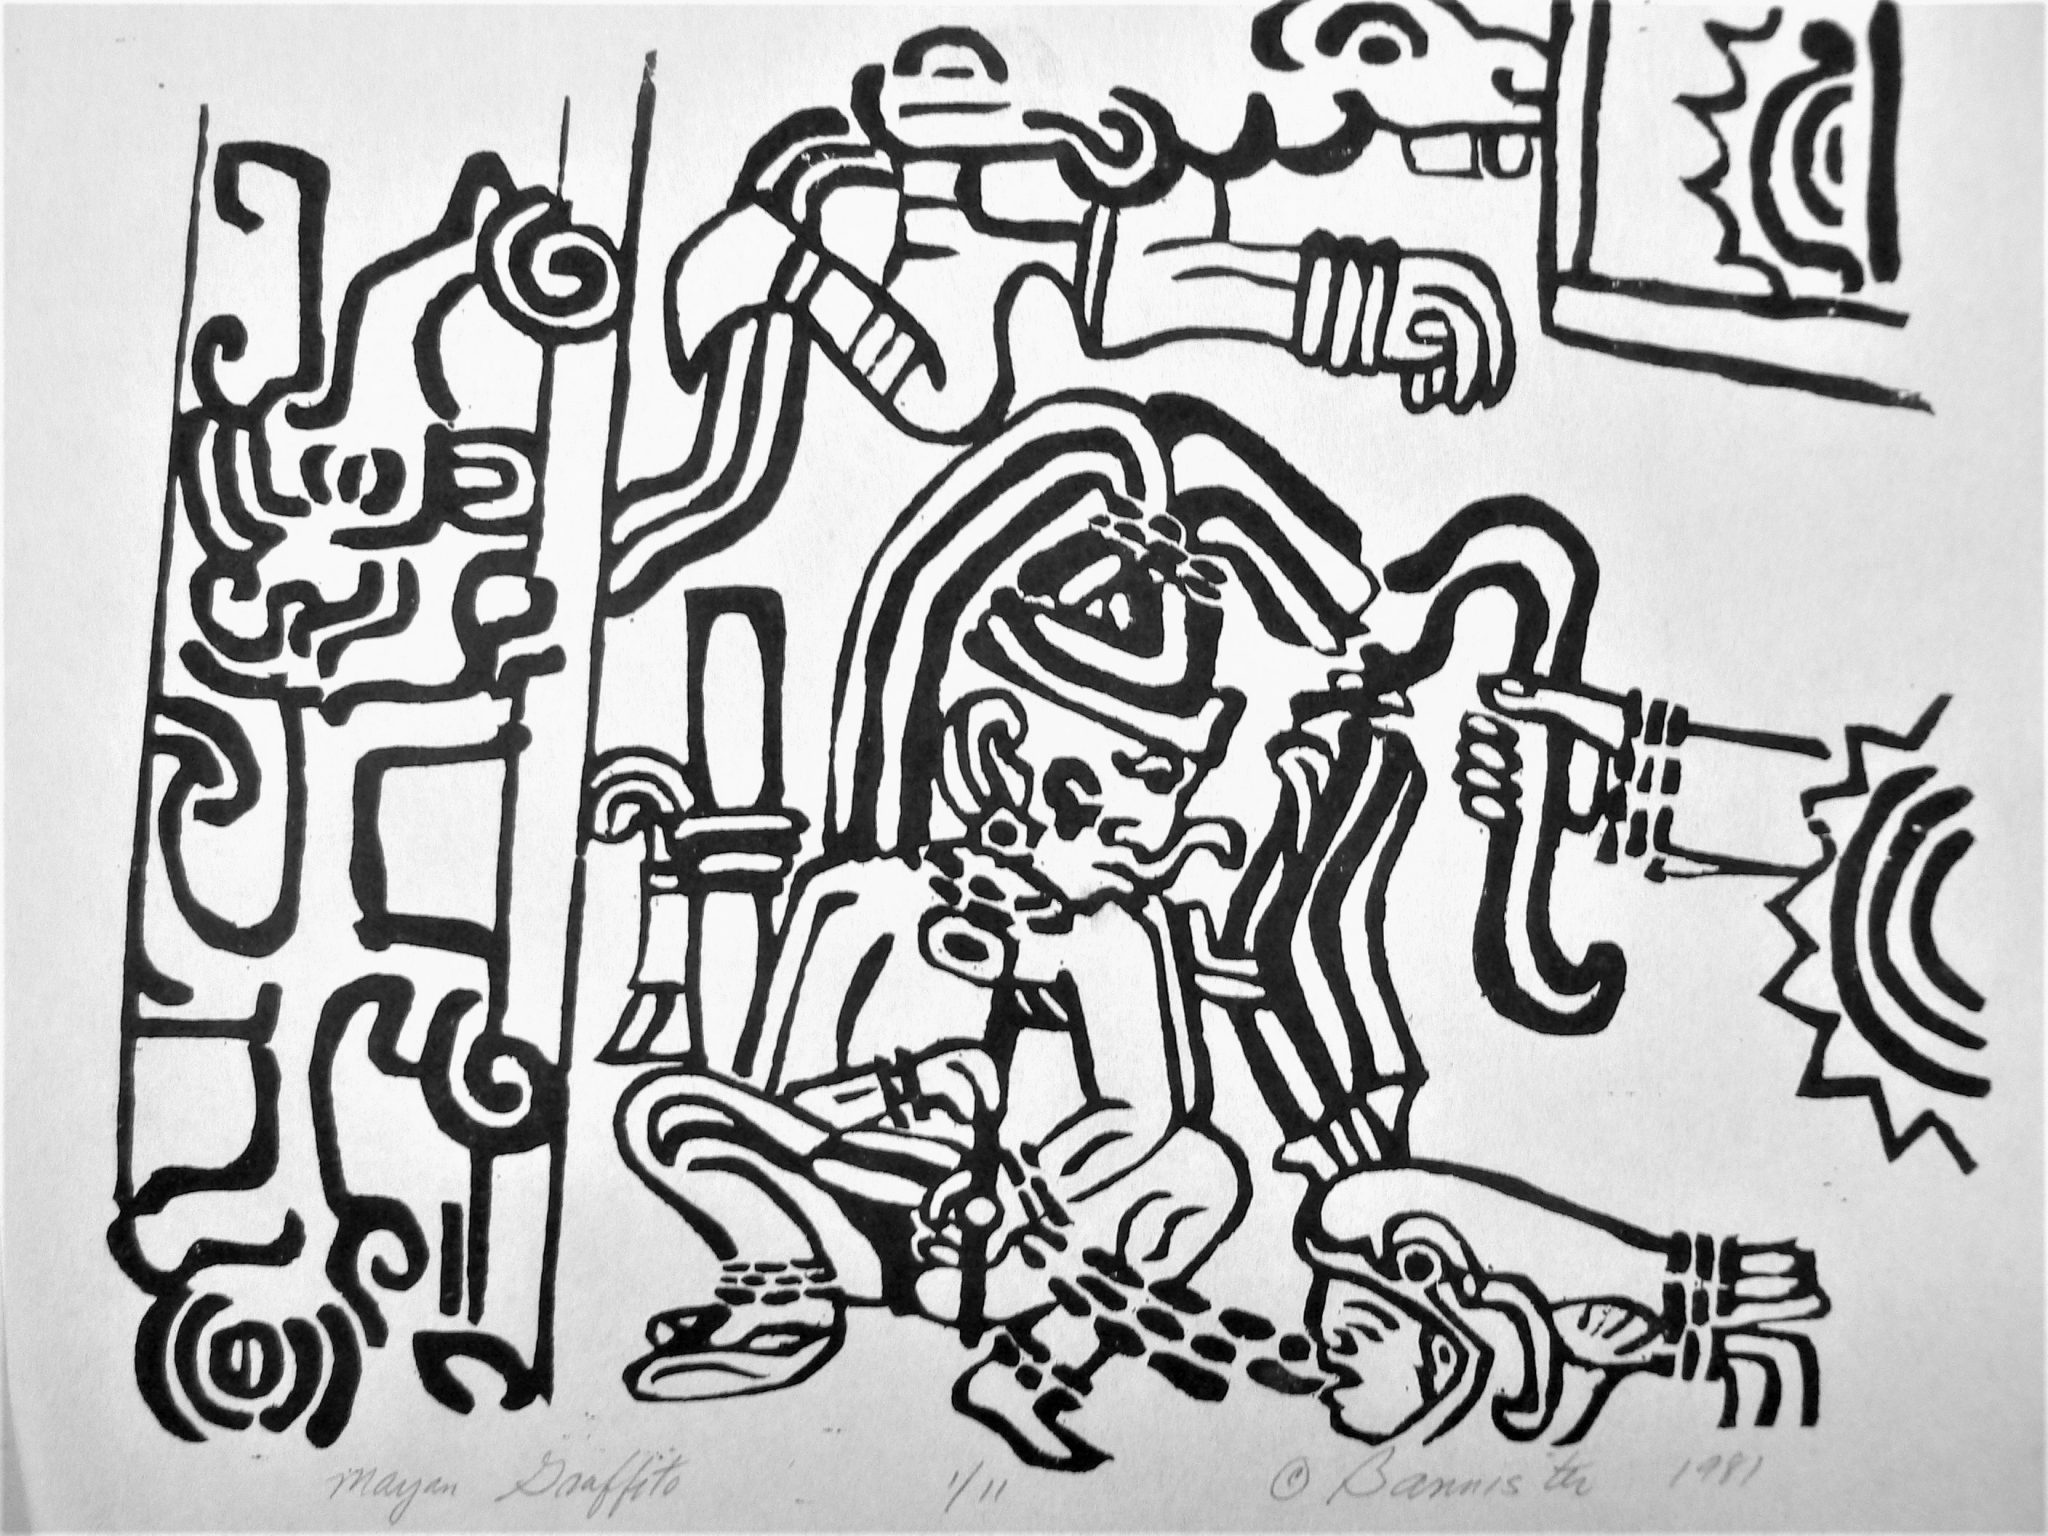 Mayan Graffito, wood block print